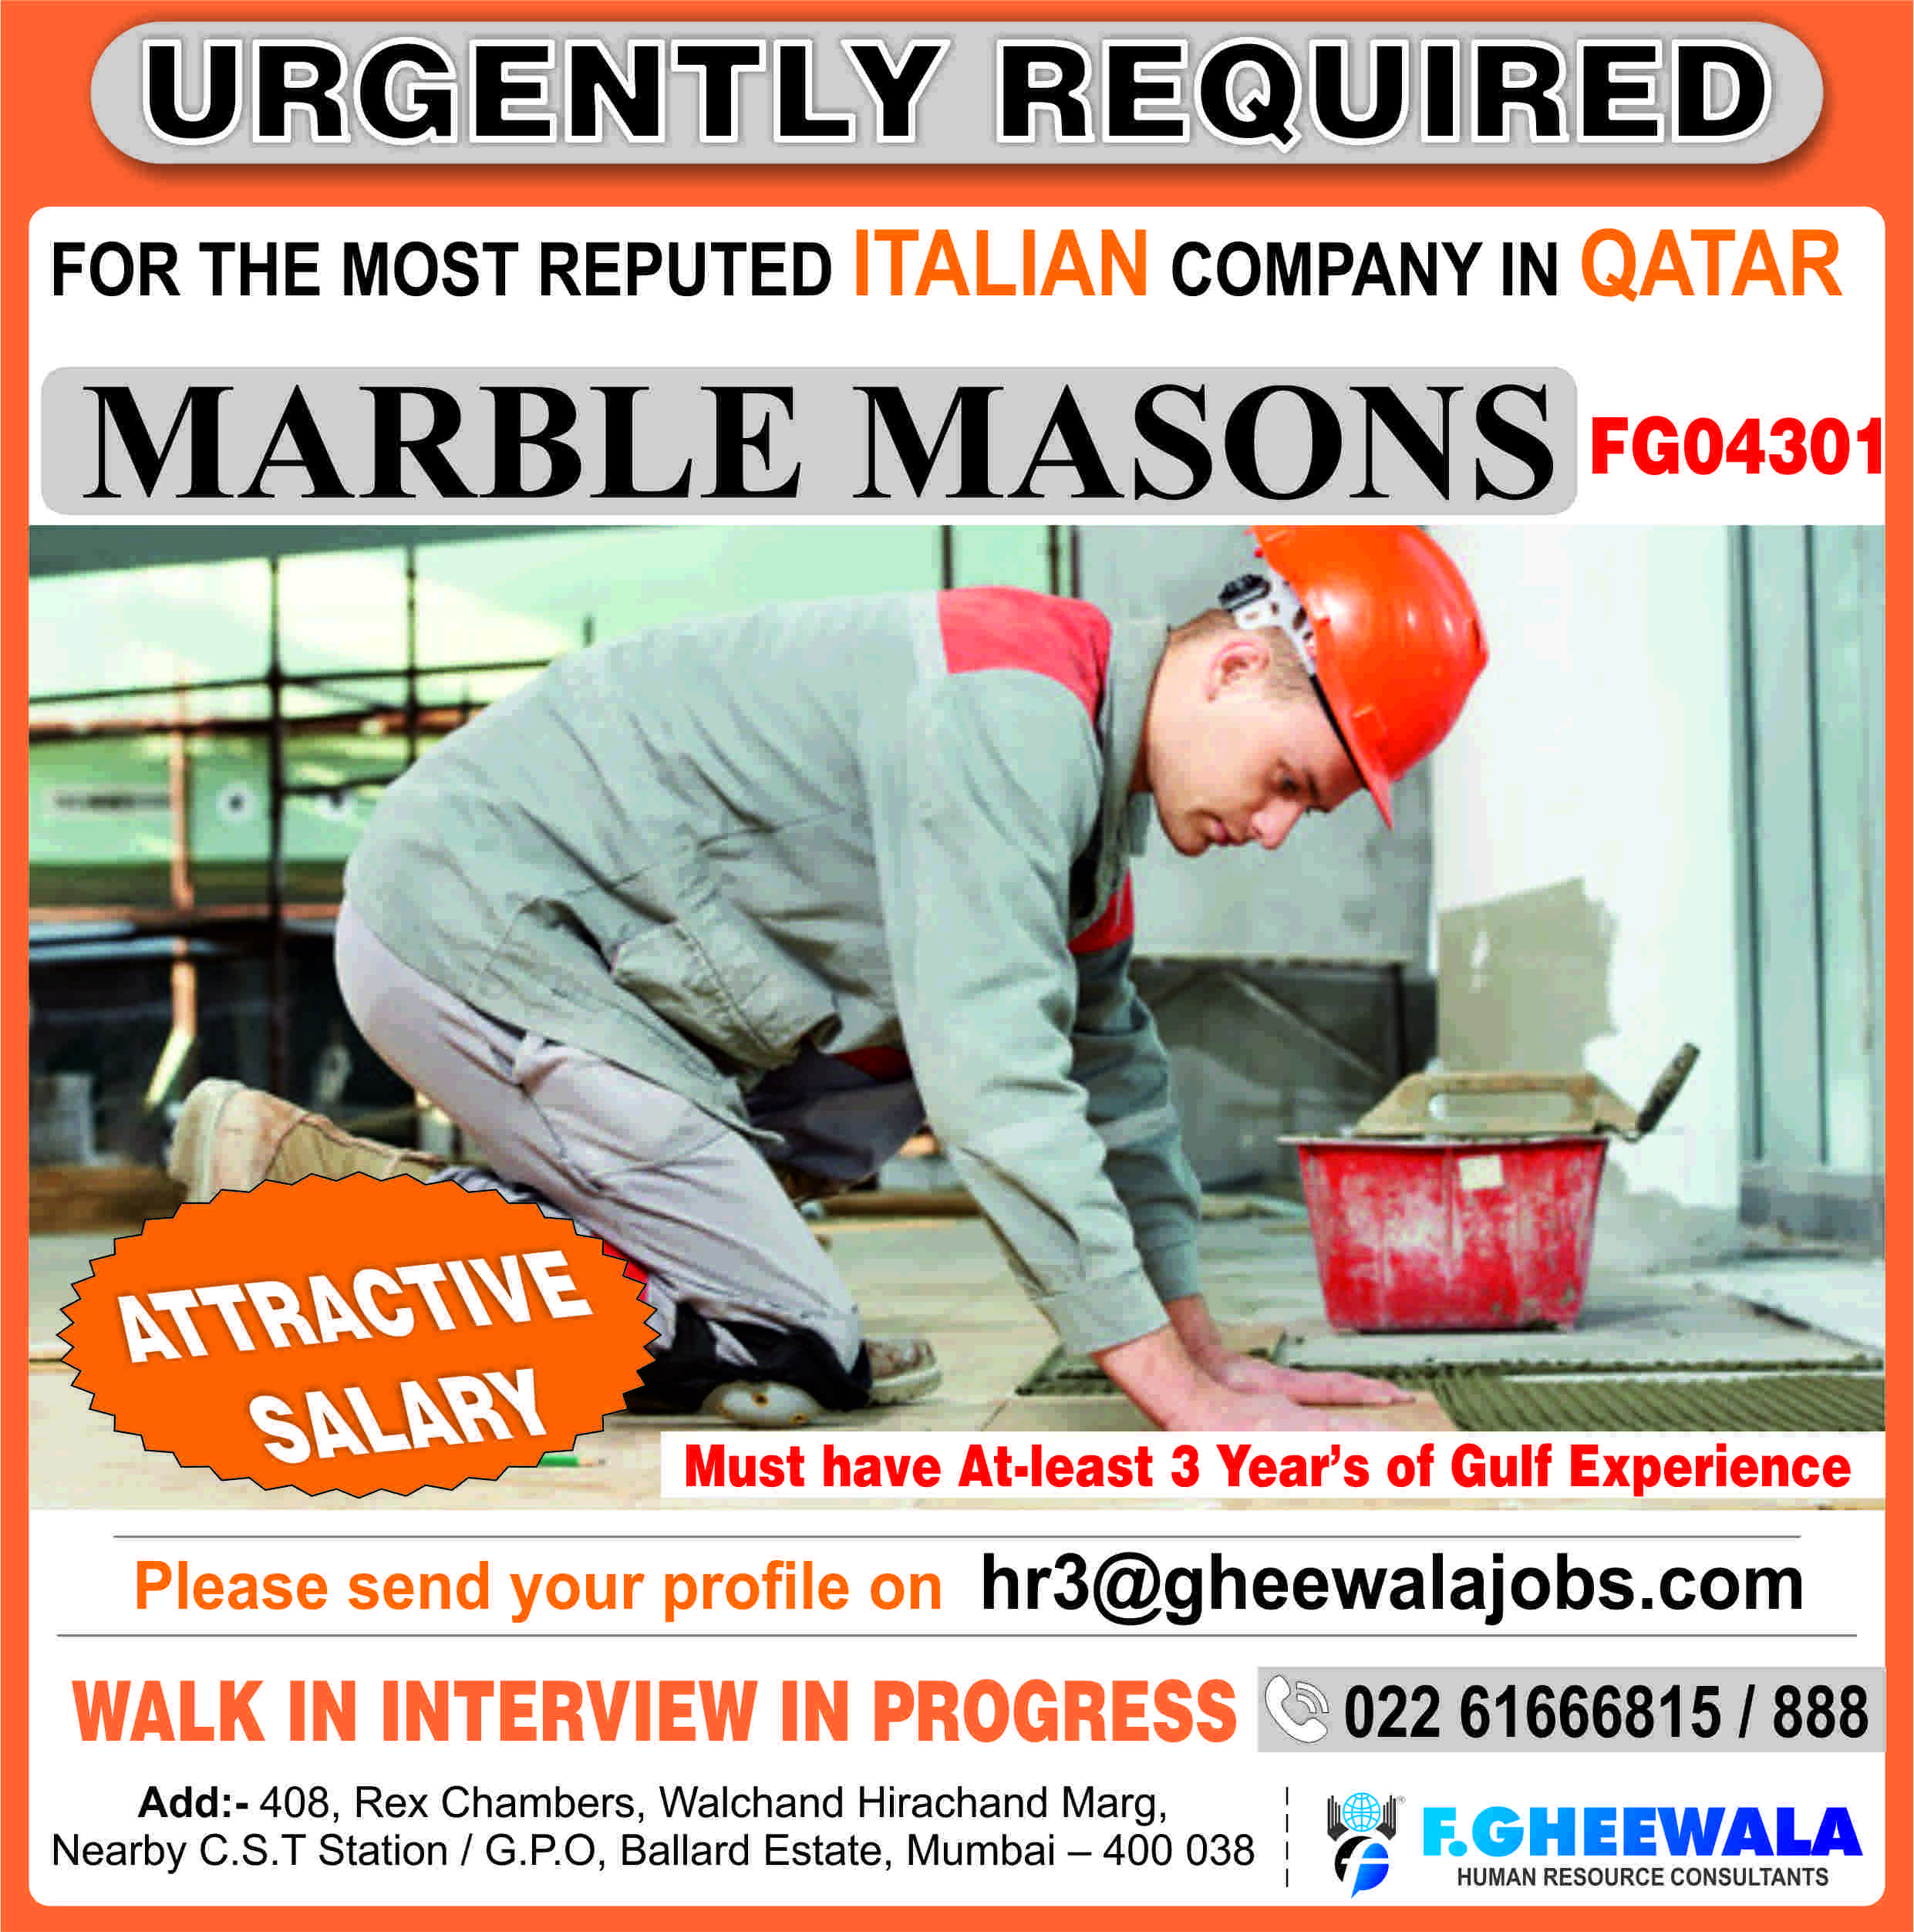 Urgently Required Marble Masons for the Most Reputed Italian Company